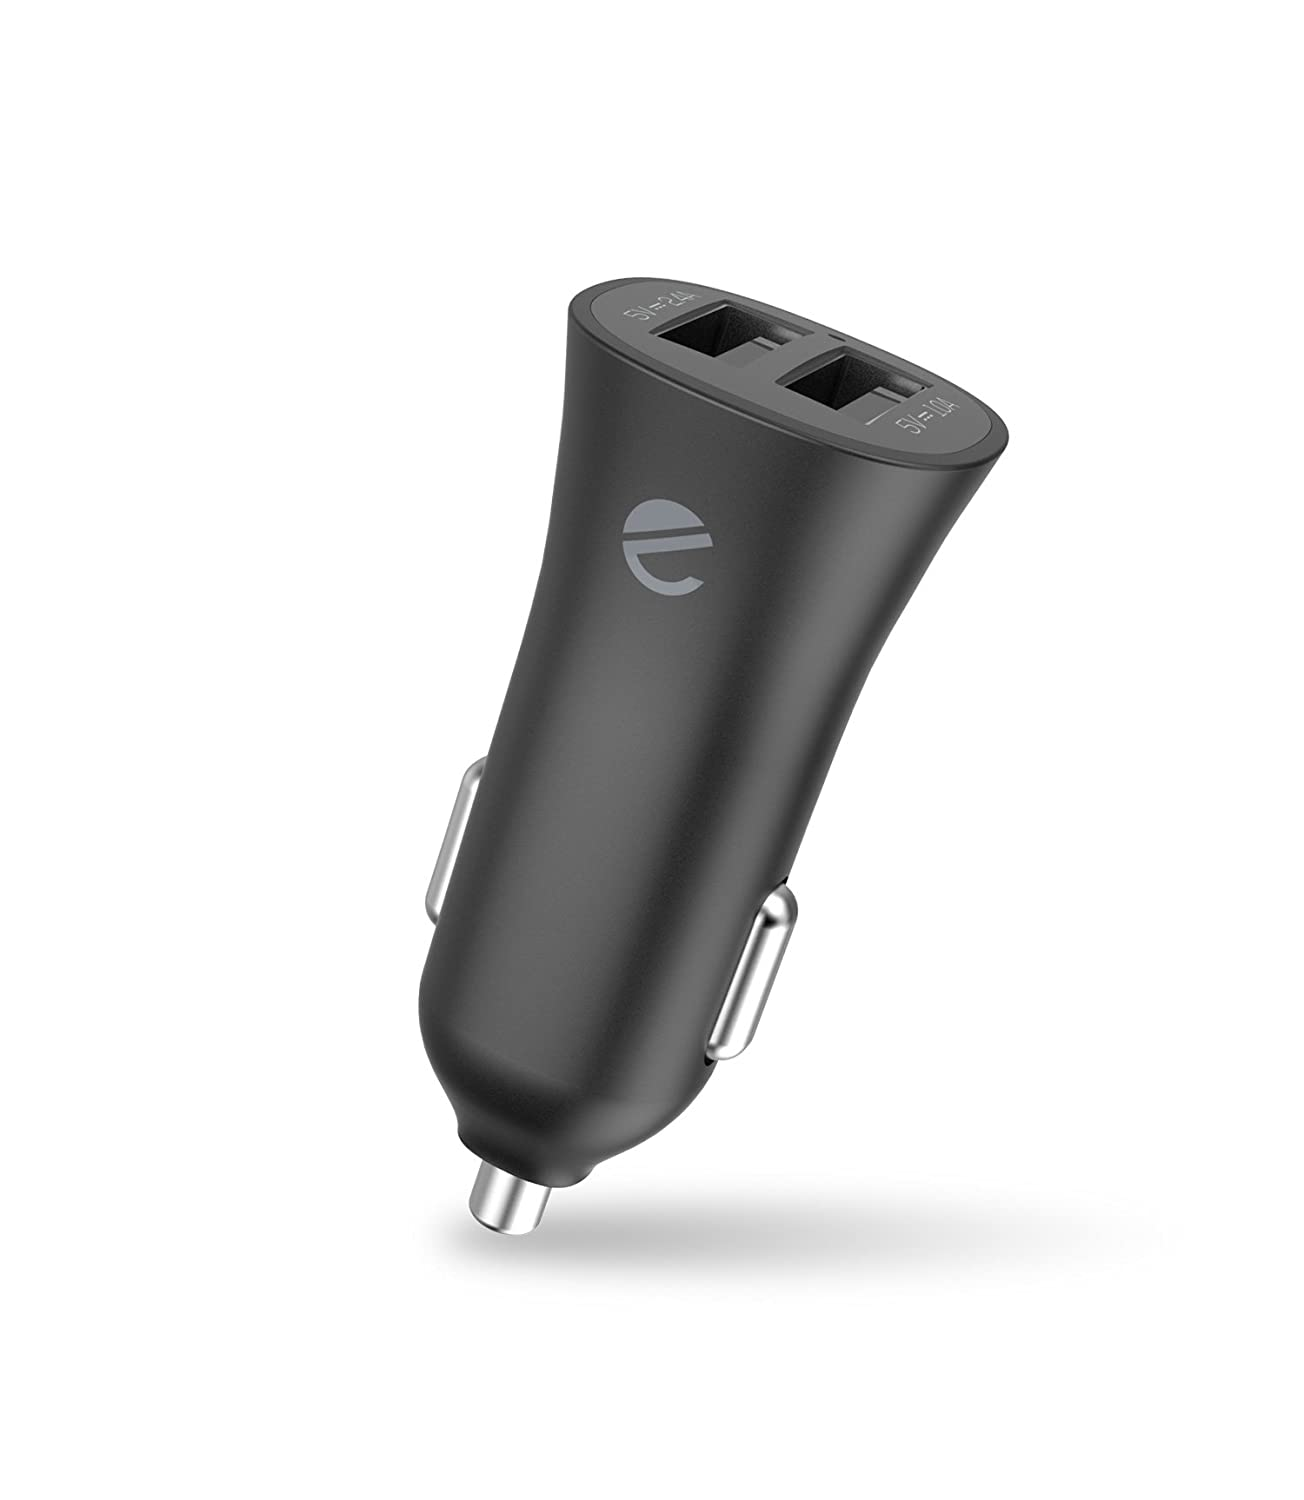 eeco 17W Car Charger Adapter with smartIC Fast Charging for Apple iPhone 8 Blackberry Priv Android and more S6//S7 Edge iPad Air//Pro Samsung Galaxy S8 7//6s//6 Plus eeco Dual USB Car Charger 3.4A